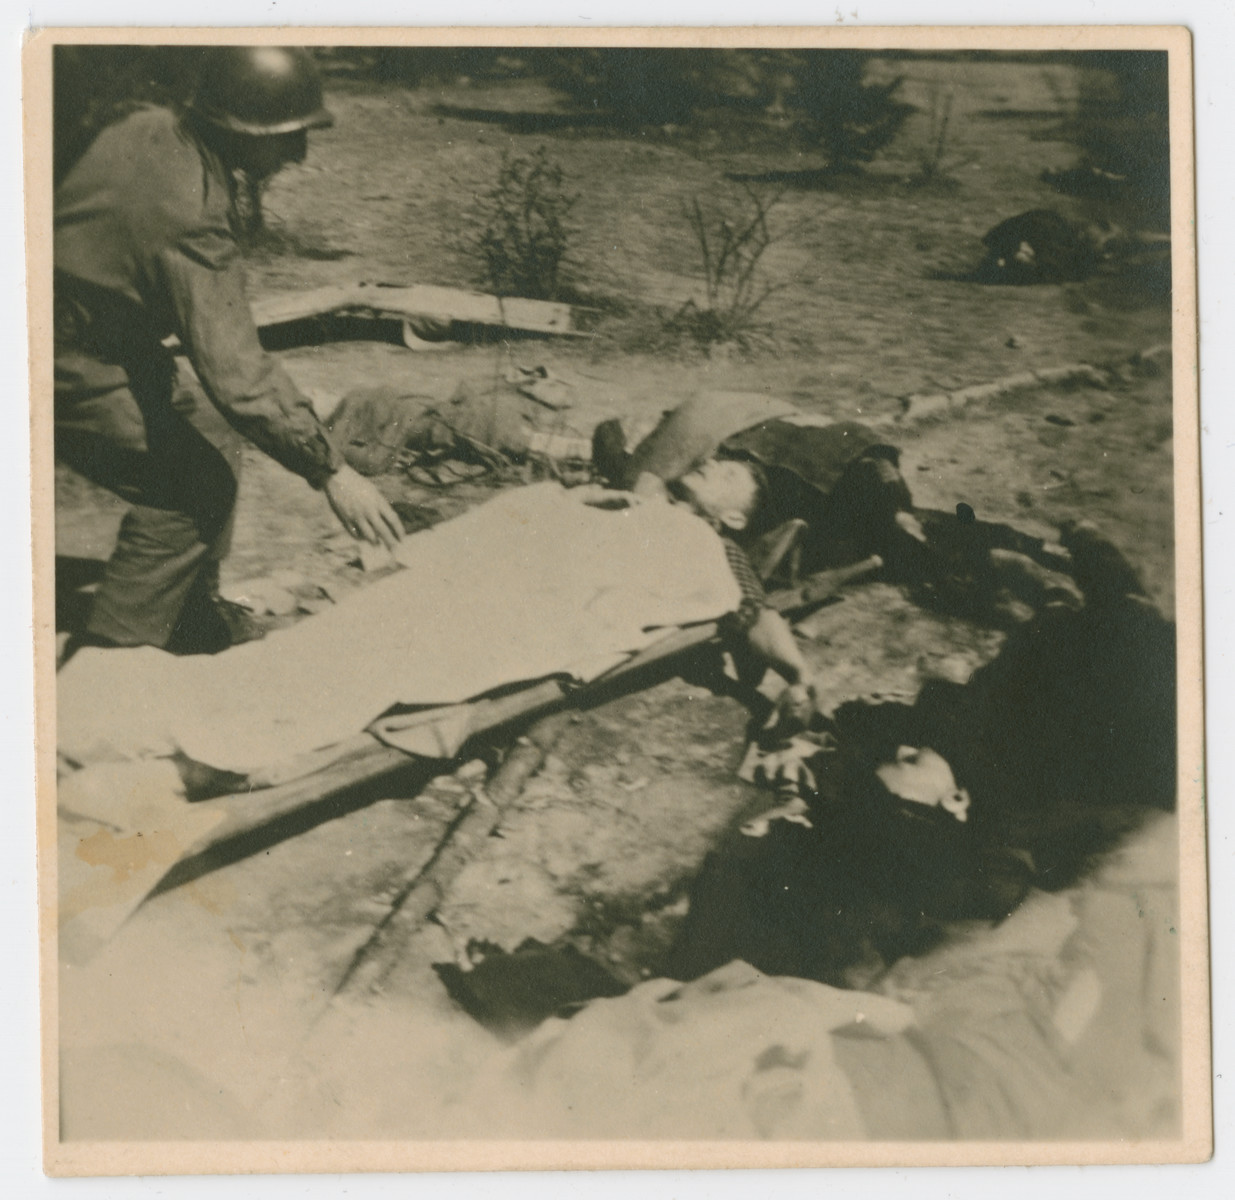 An American serviceman inspects the covered body of either a survivor or a victim lying on a stretcher on the grounds of the Ohrdruf concentration camp.